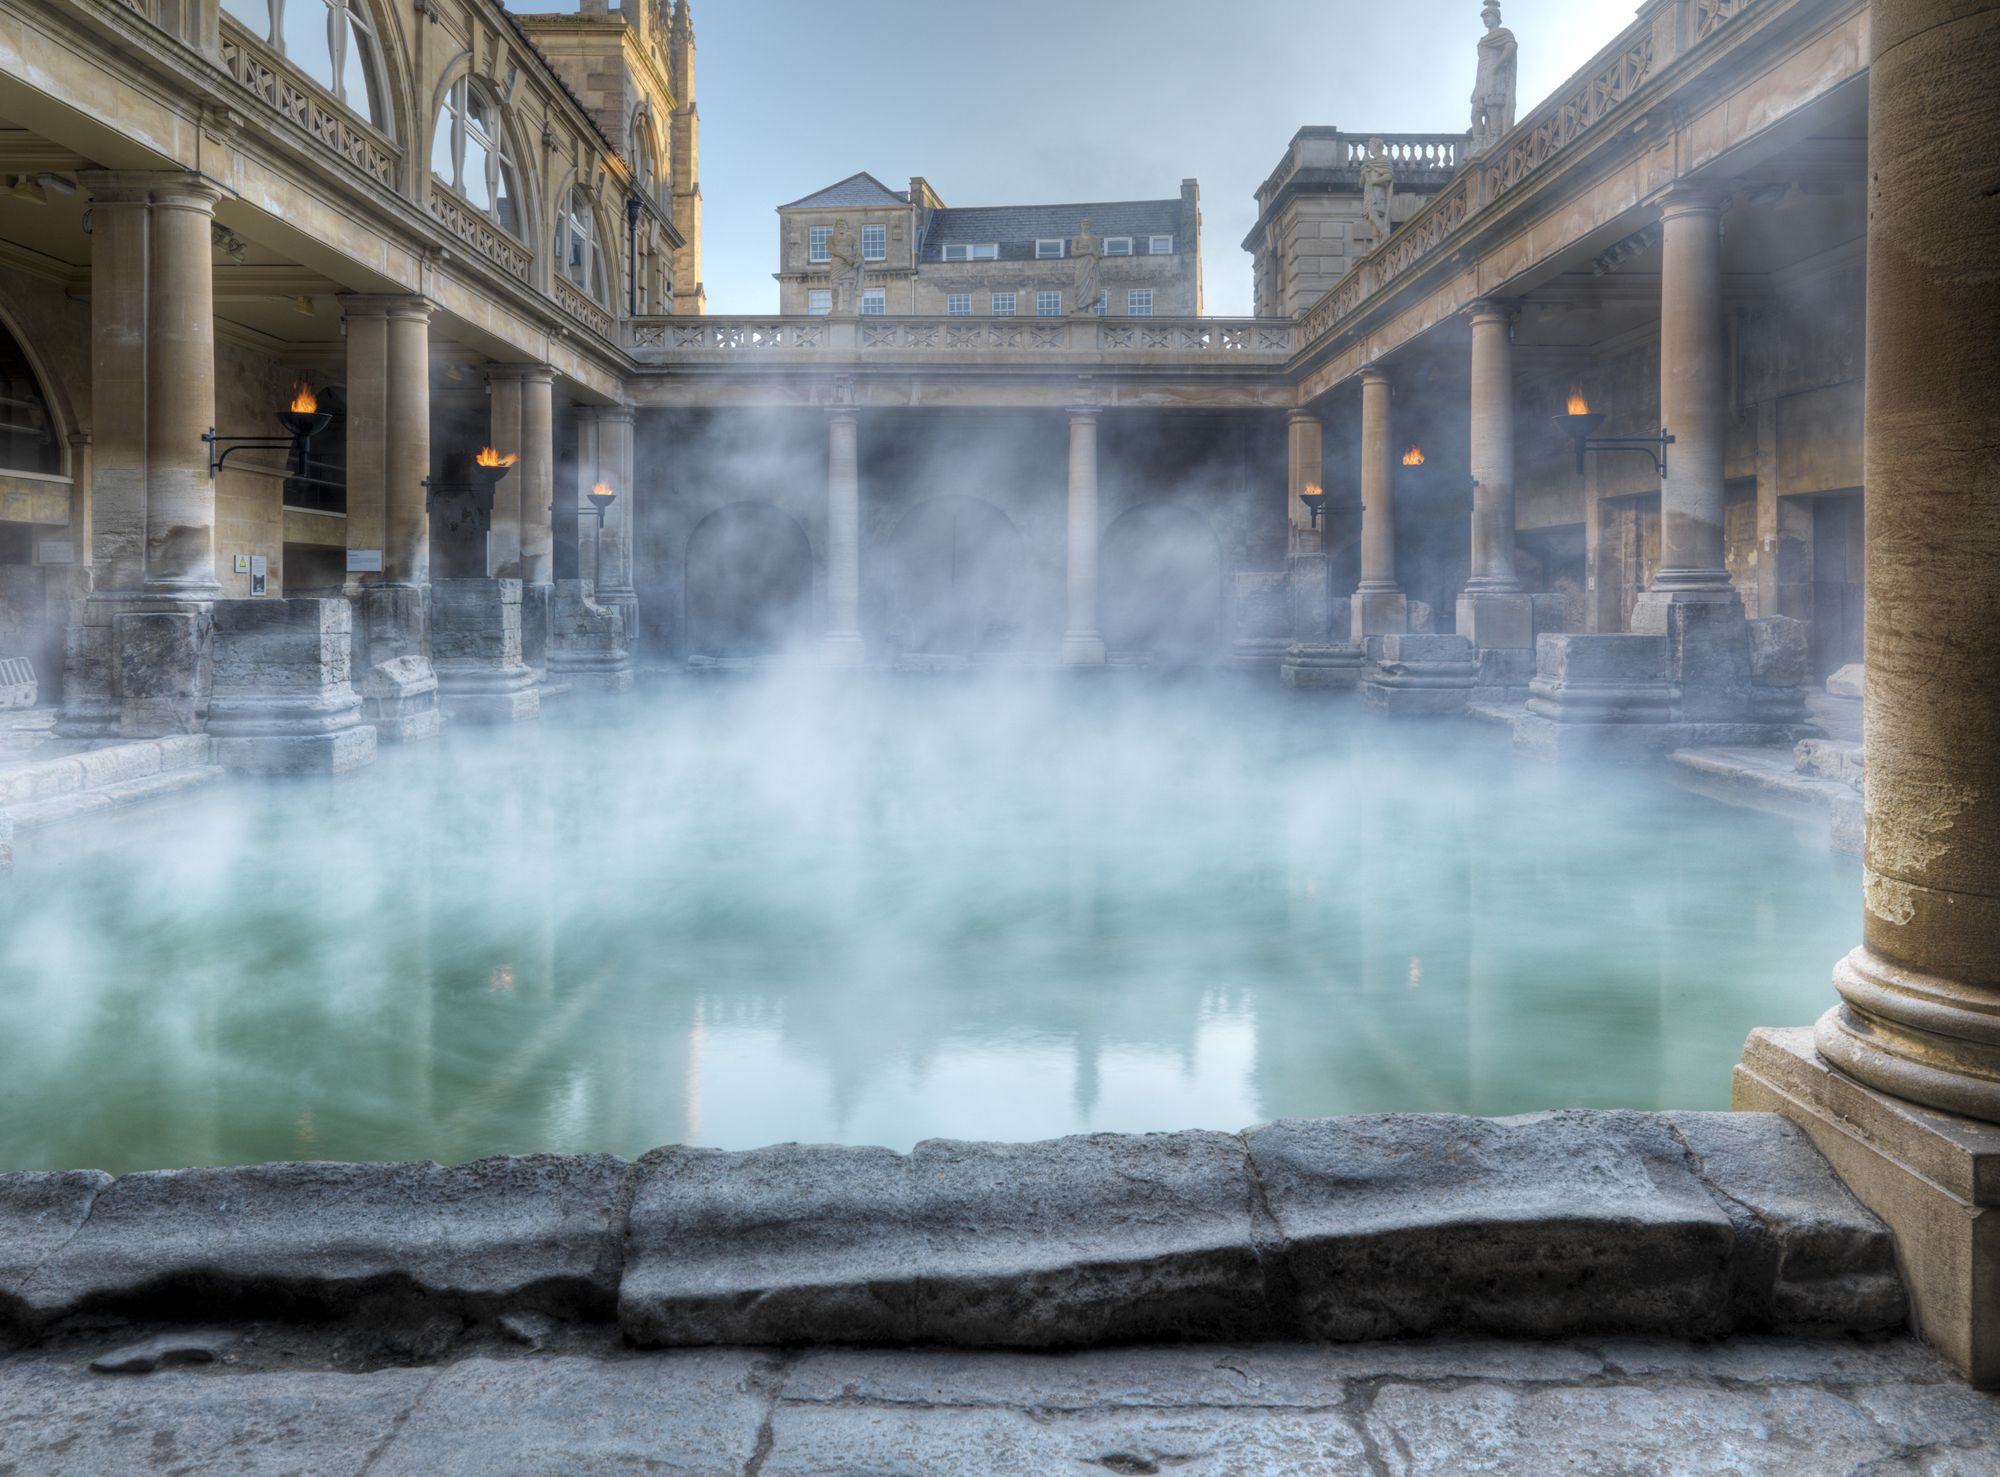 Bath - the elegant city of Bath is home to Britain's only natural hot springs